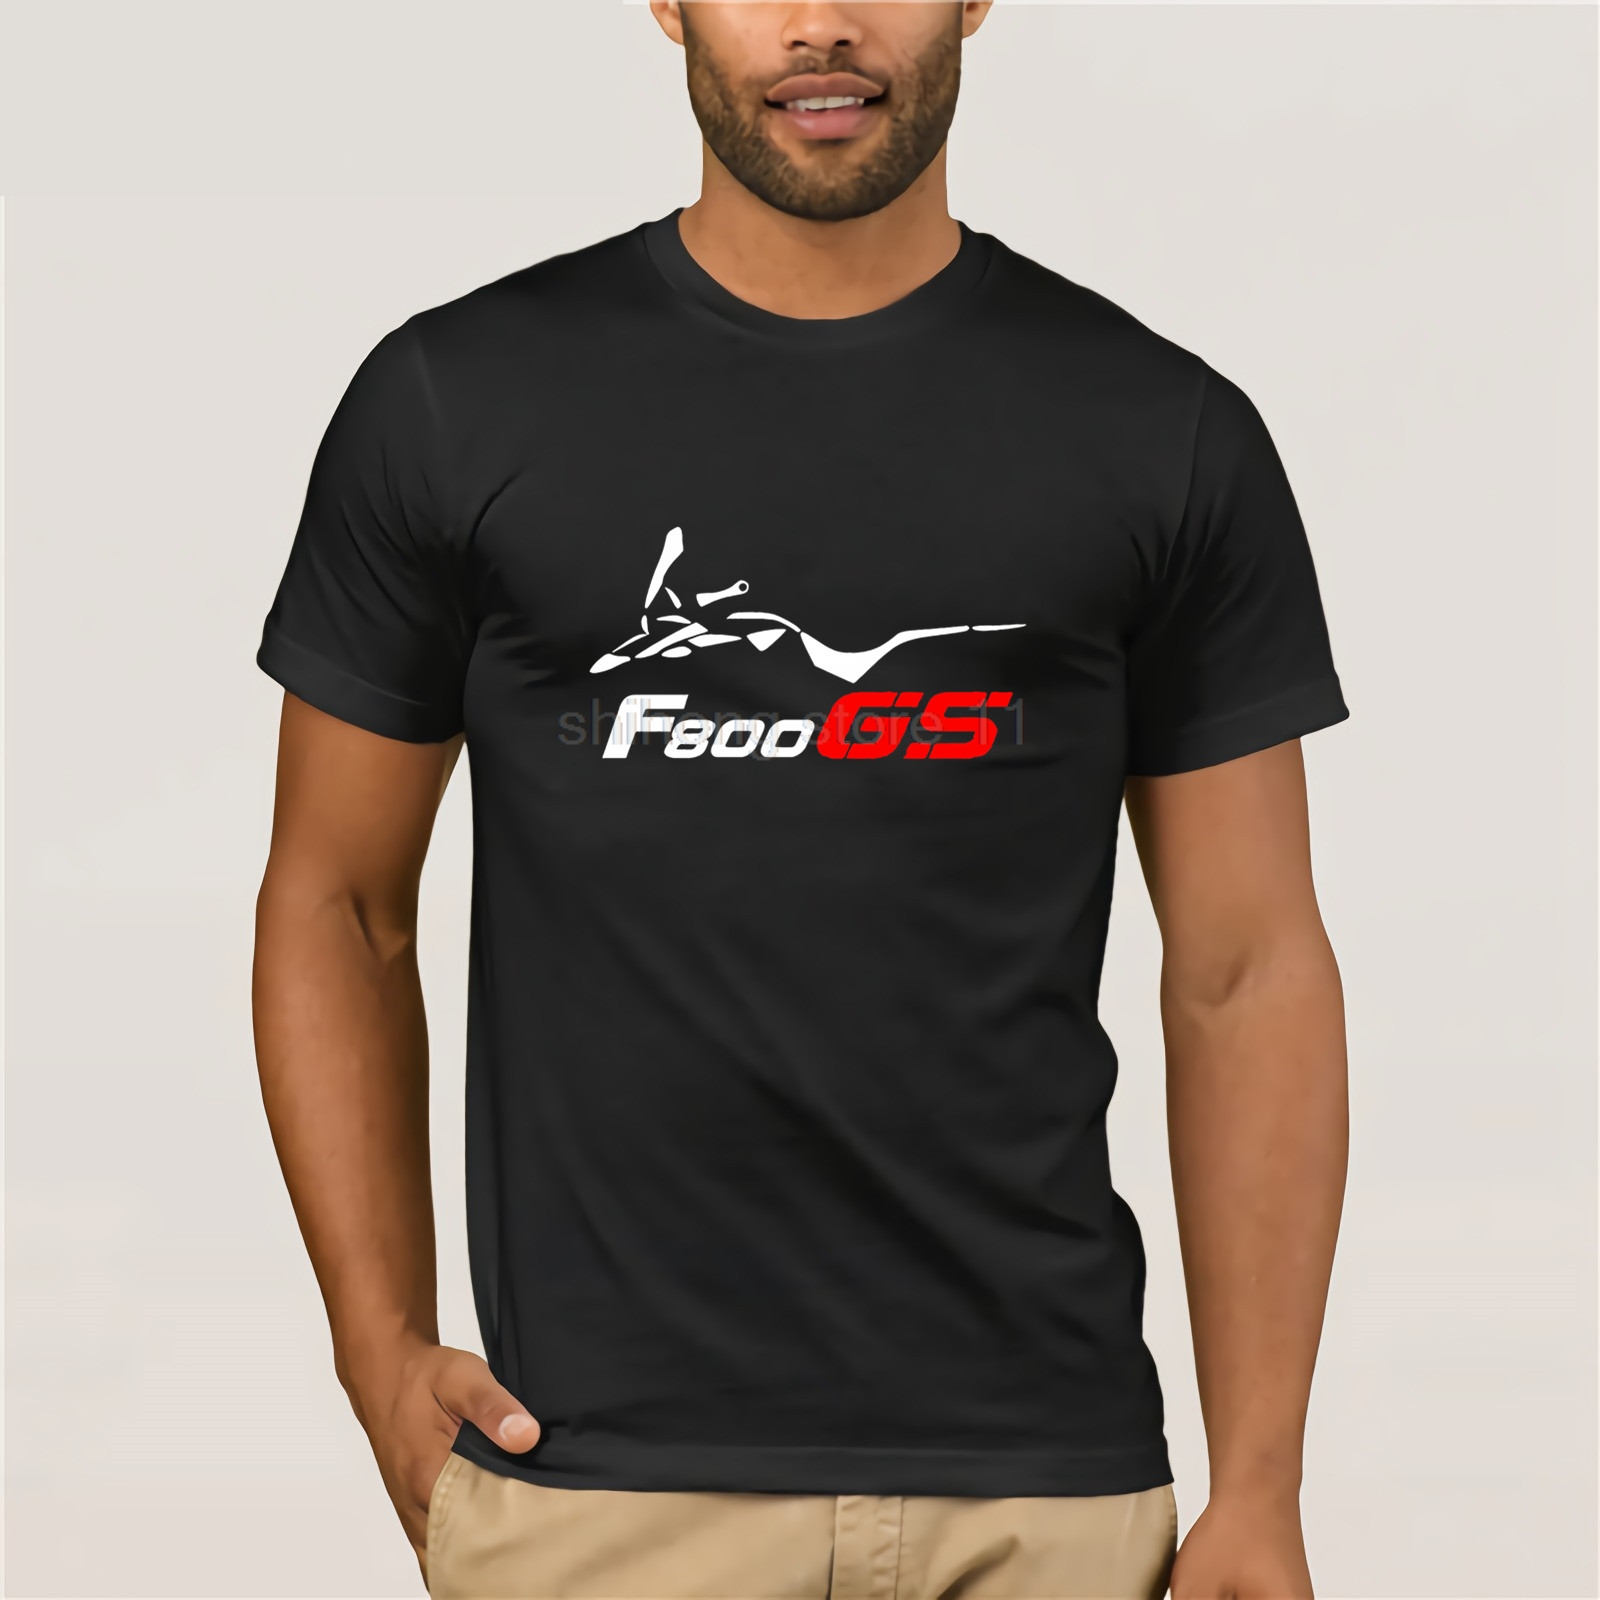 F 800 <font><b>Gs</b></font> Motorcycle - Motif Motard In Flex - Motorcycle 2020 Men Fashion Funny Streetwear Brand Clothing Design <font><b>Tshirt</b></font> Online image